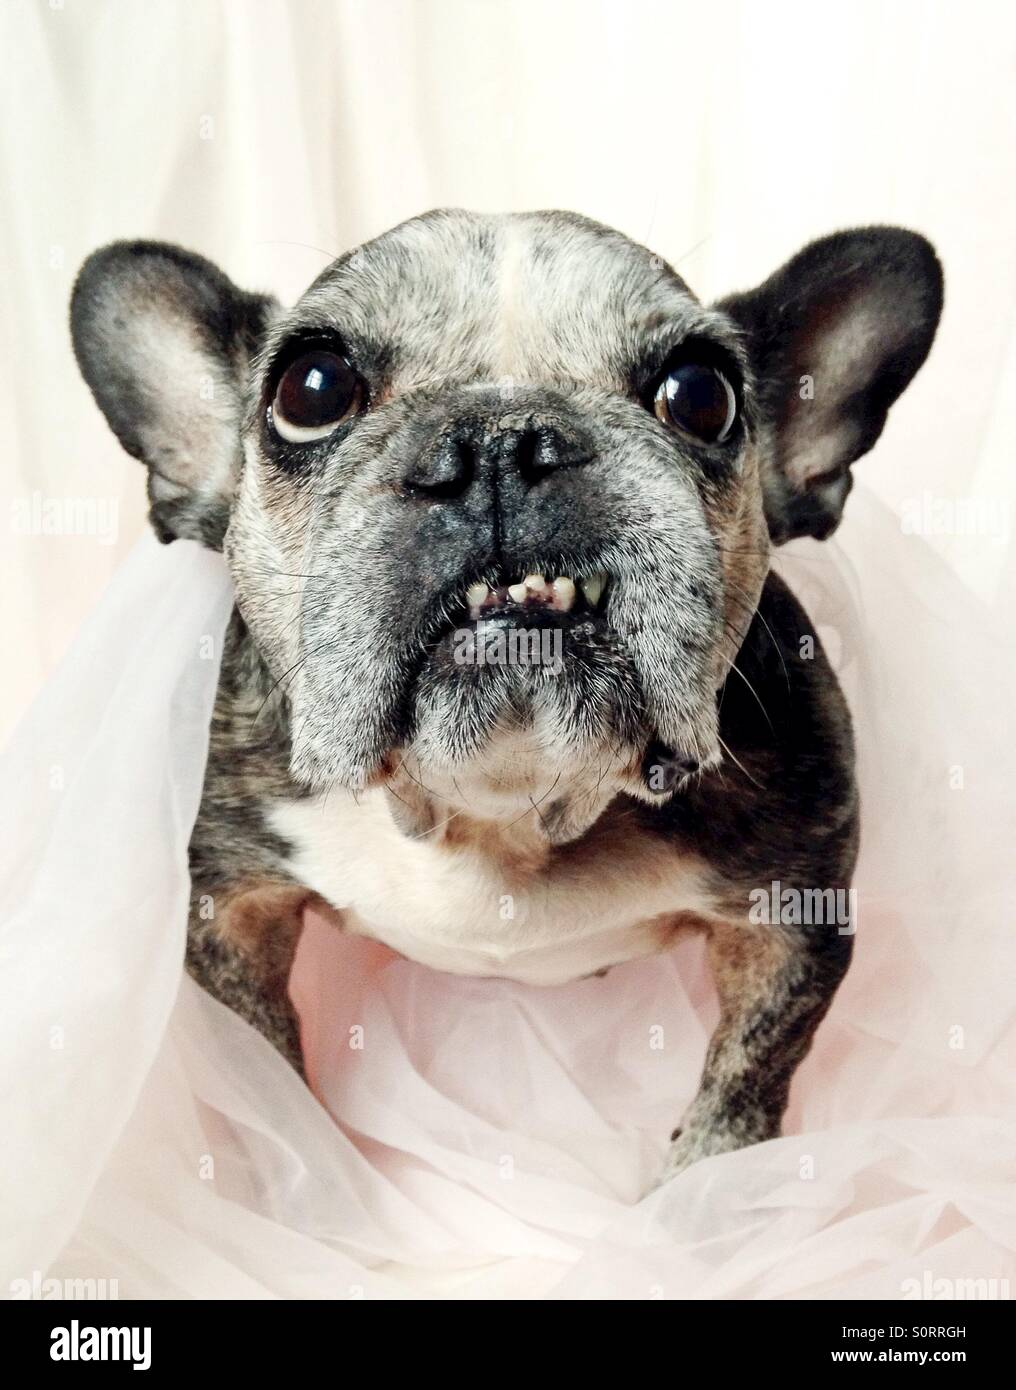 A close-up of a cute old French bulldog. - Stock Image